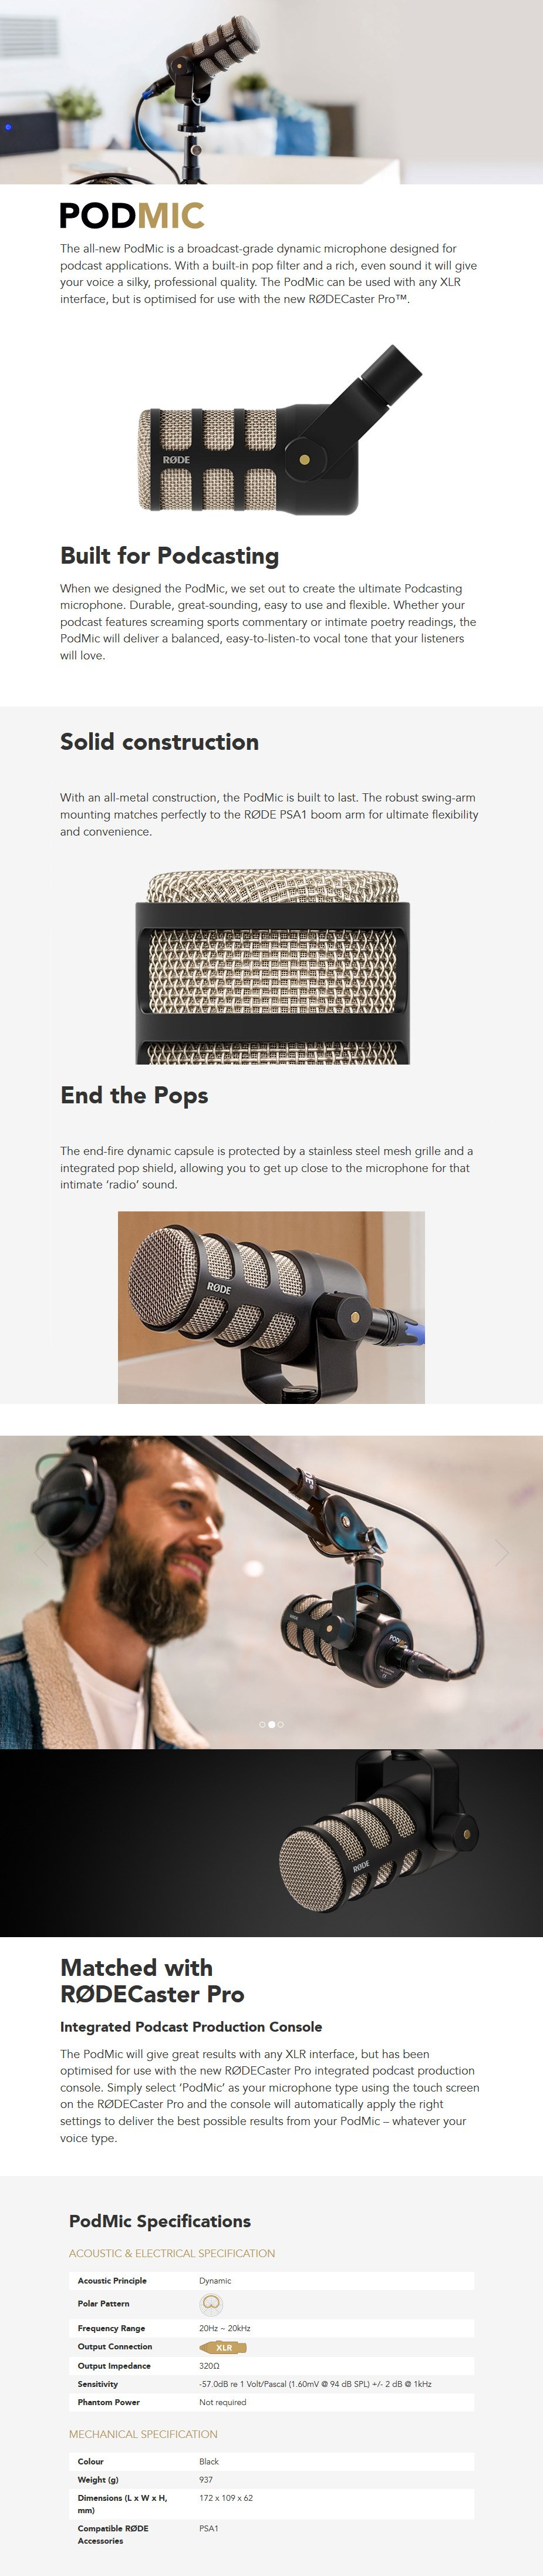 RODE PodMic Broadcast-Grade Dynamic Microphone - Desktop Overview 1